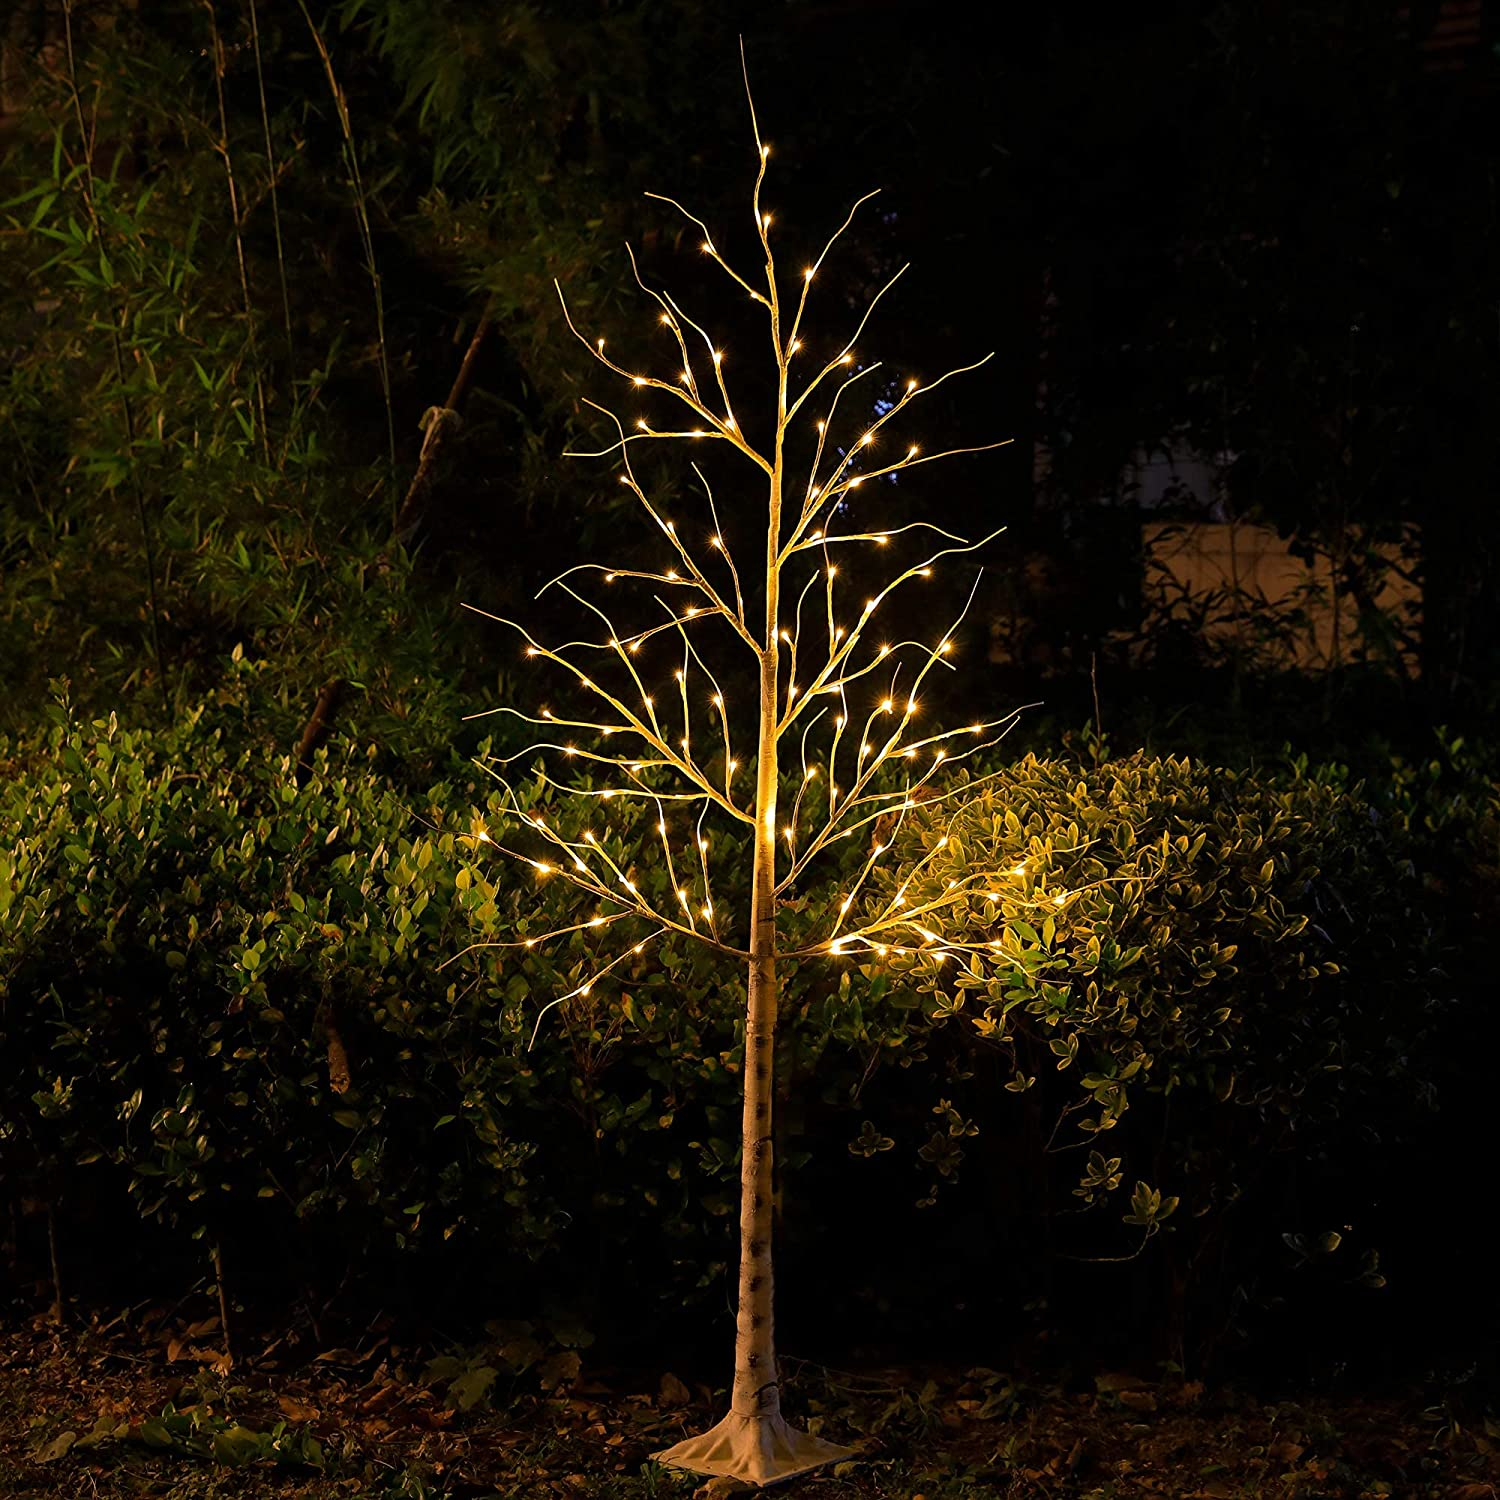 Snokip Lighted Birch Tree 6Ft Max 67% OFF for 96 Vale Twigs Popular brand in the world LED